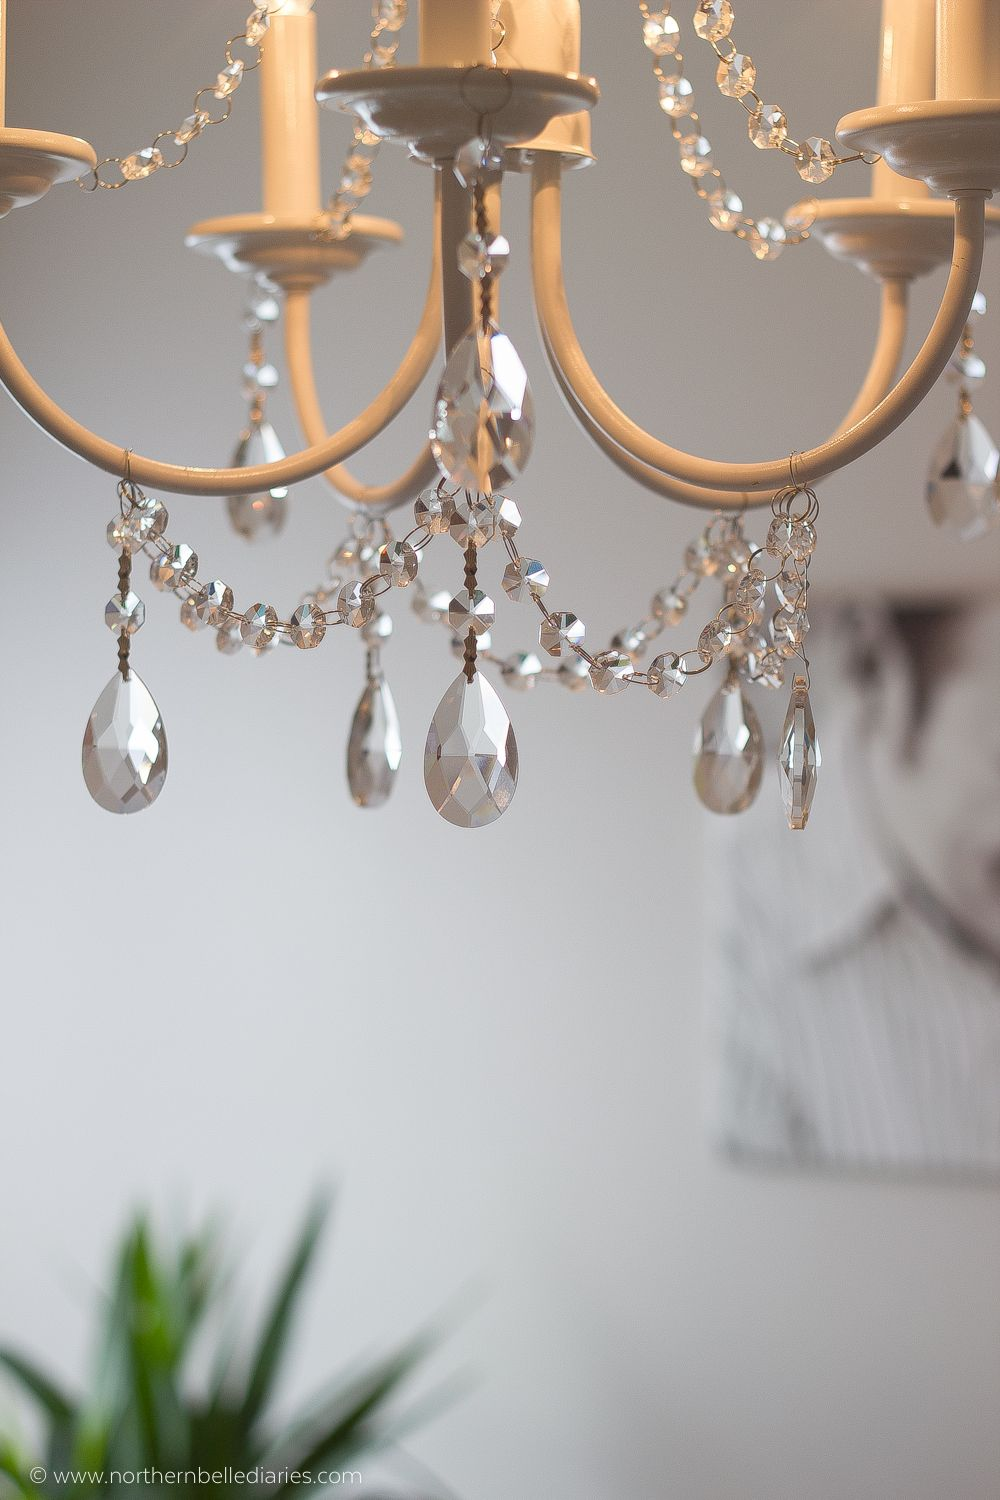 Diy crystal chandelier easy tutorial araa iluminacin y diy crystal chandelier easy tutorial araa iluminacin y bricolaje fcil aloadofball Gallery